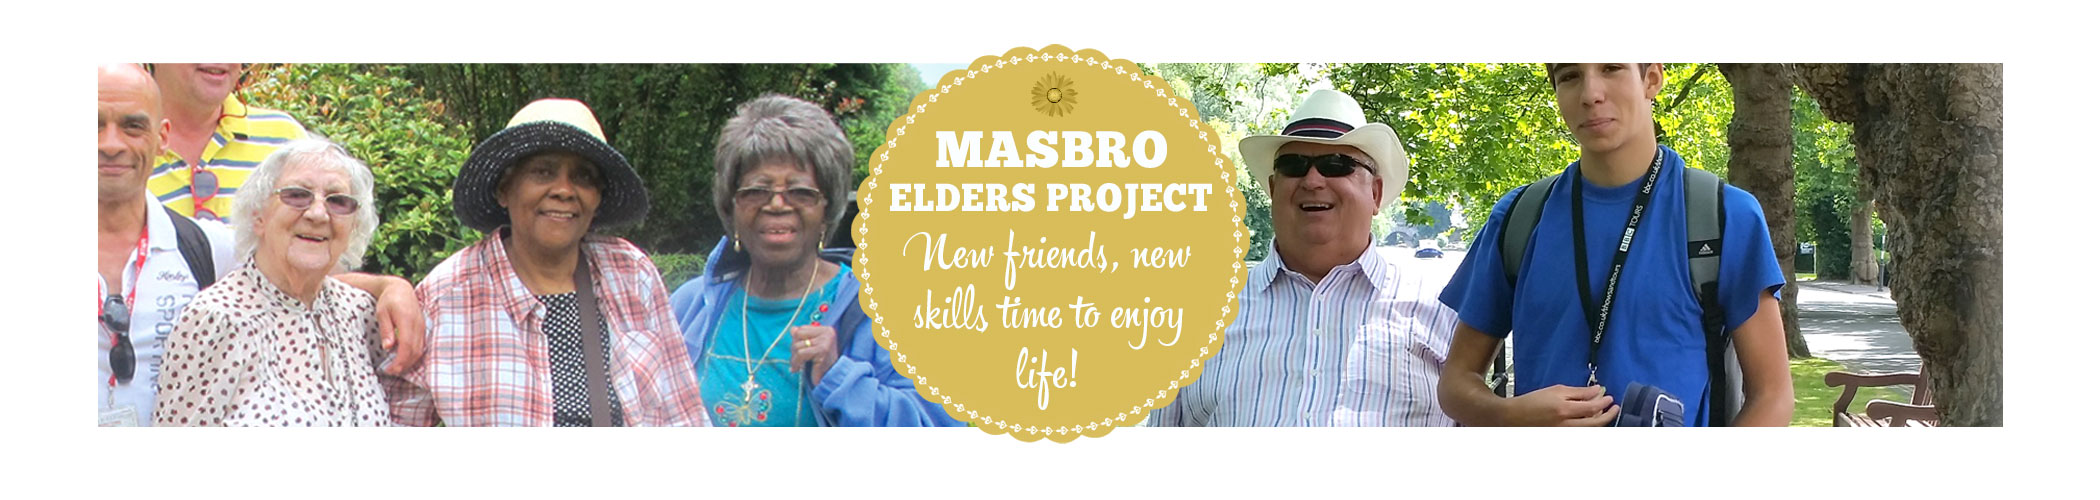 Masbro Elders page iphone banner